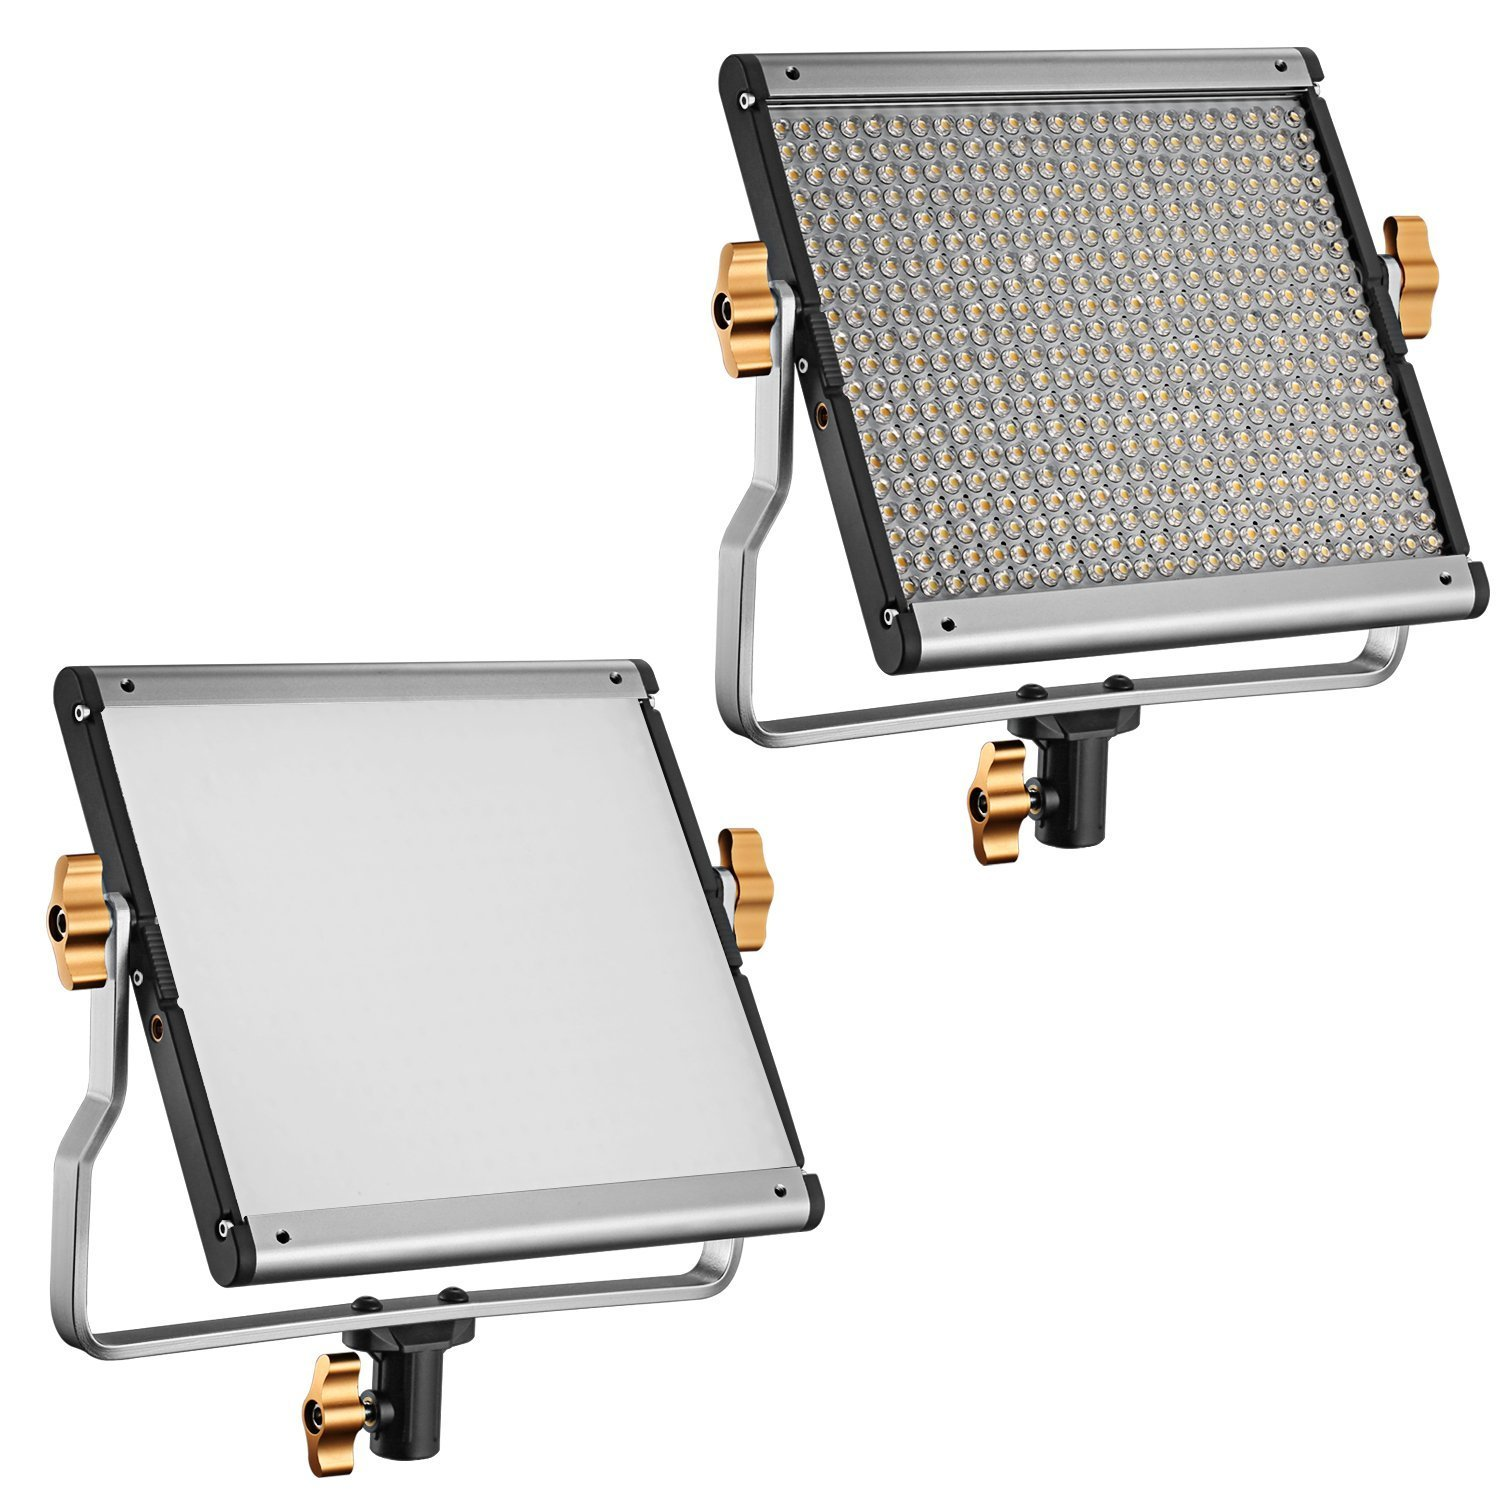 Neewer 480 LED Video Light and Stand Lighting Kit - Dimmable Bi-Color LED Panel with U Bracket (3200-5600K, CRI 96+) and 75-Inch Light Stand for Photo Studio Portrait, YouTube Video Photography by Neewer (Image #7)